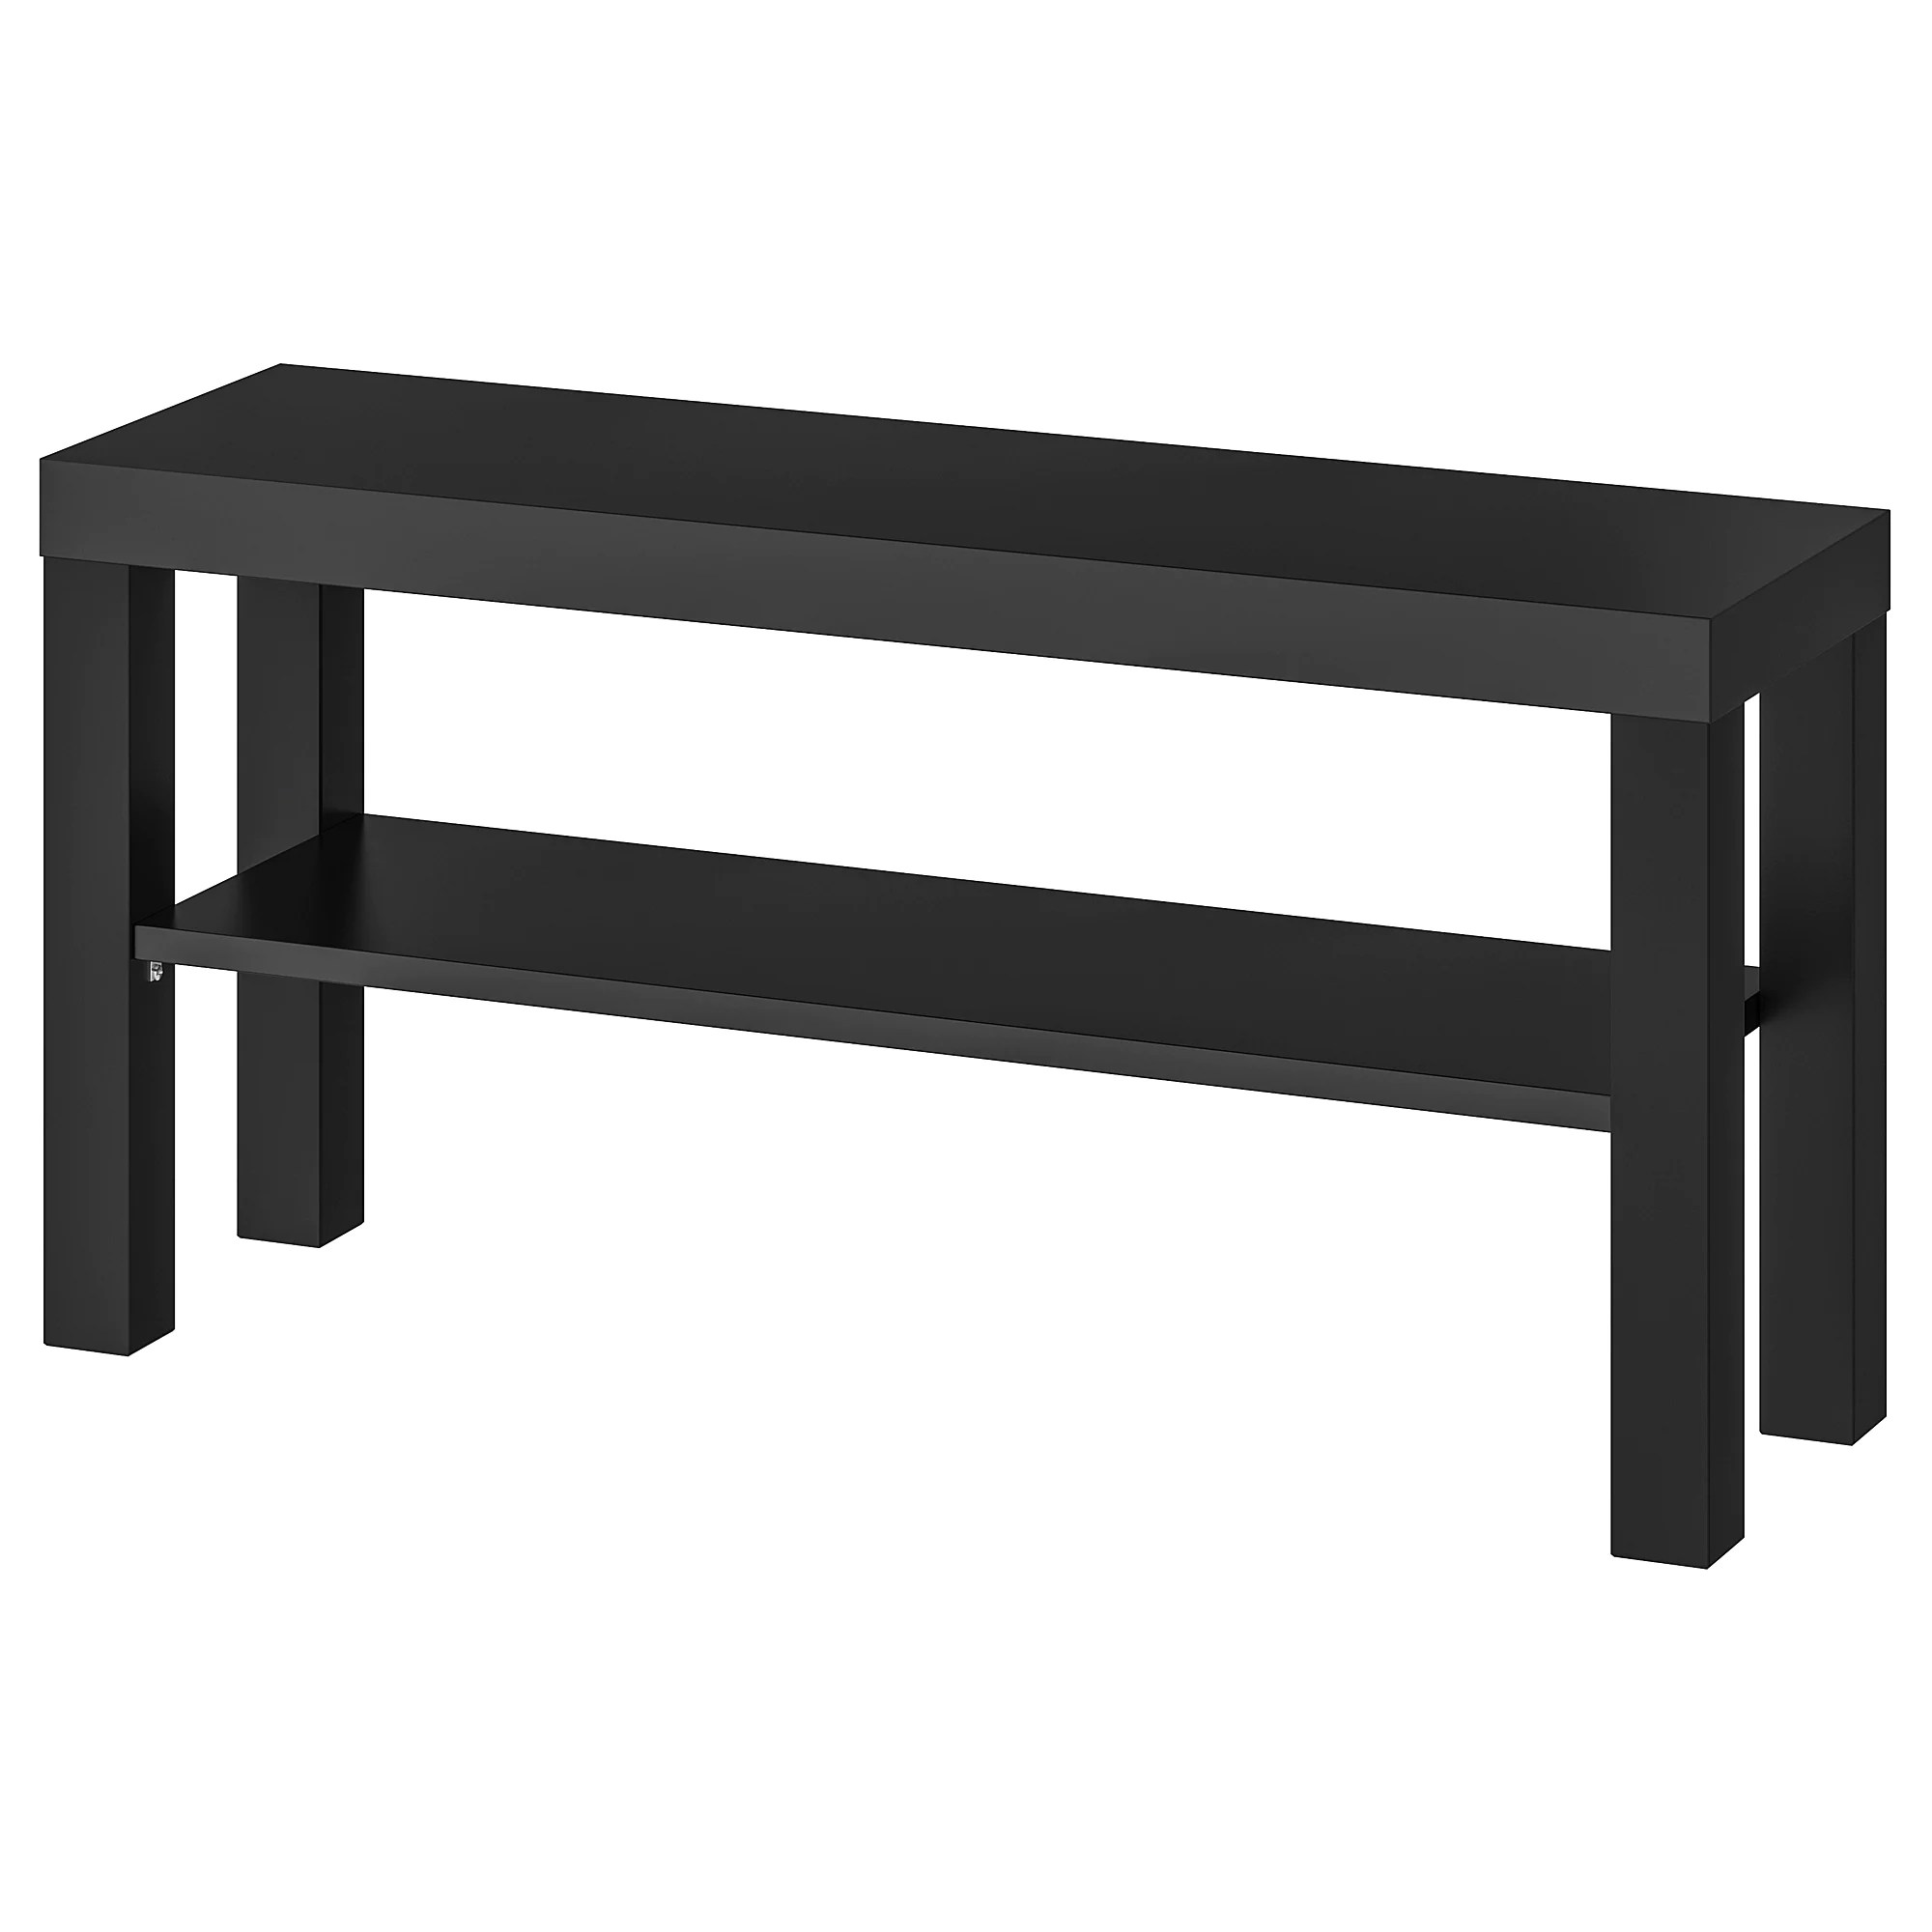 Black Bench Lack Tv Unit Black